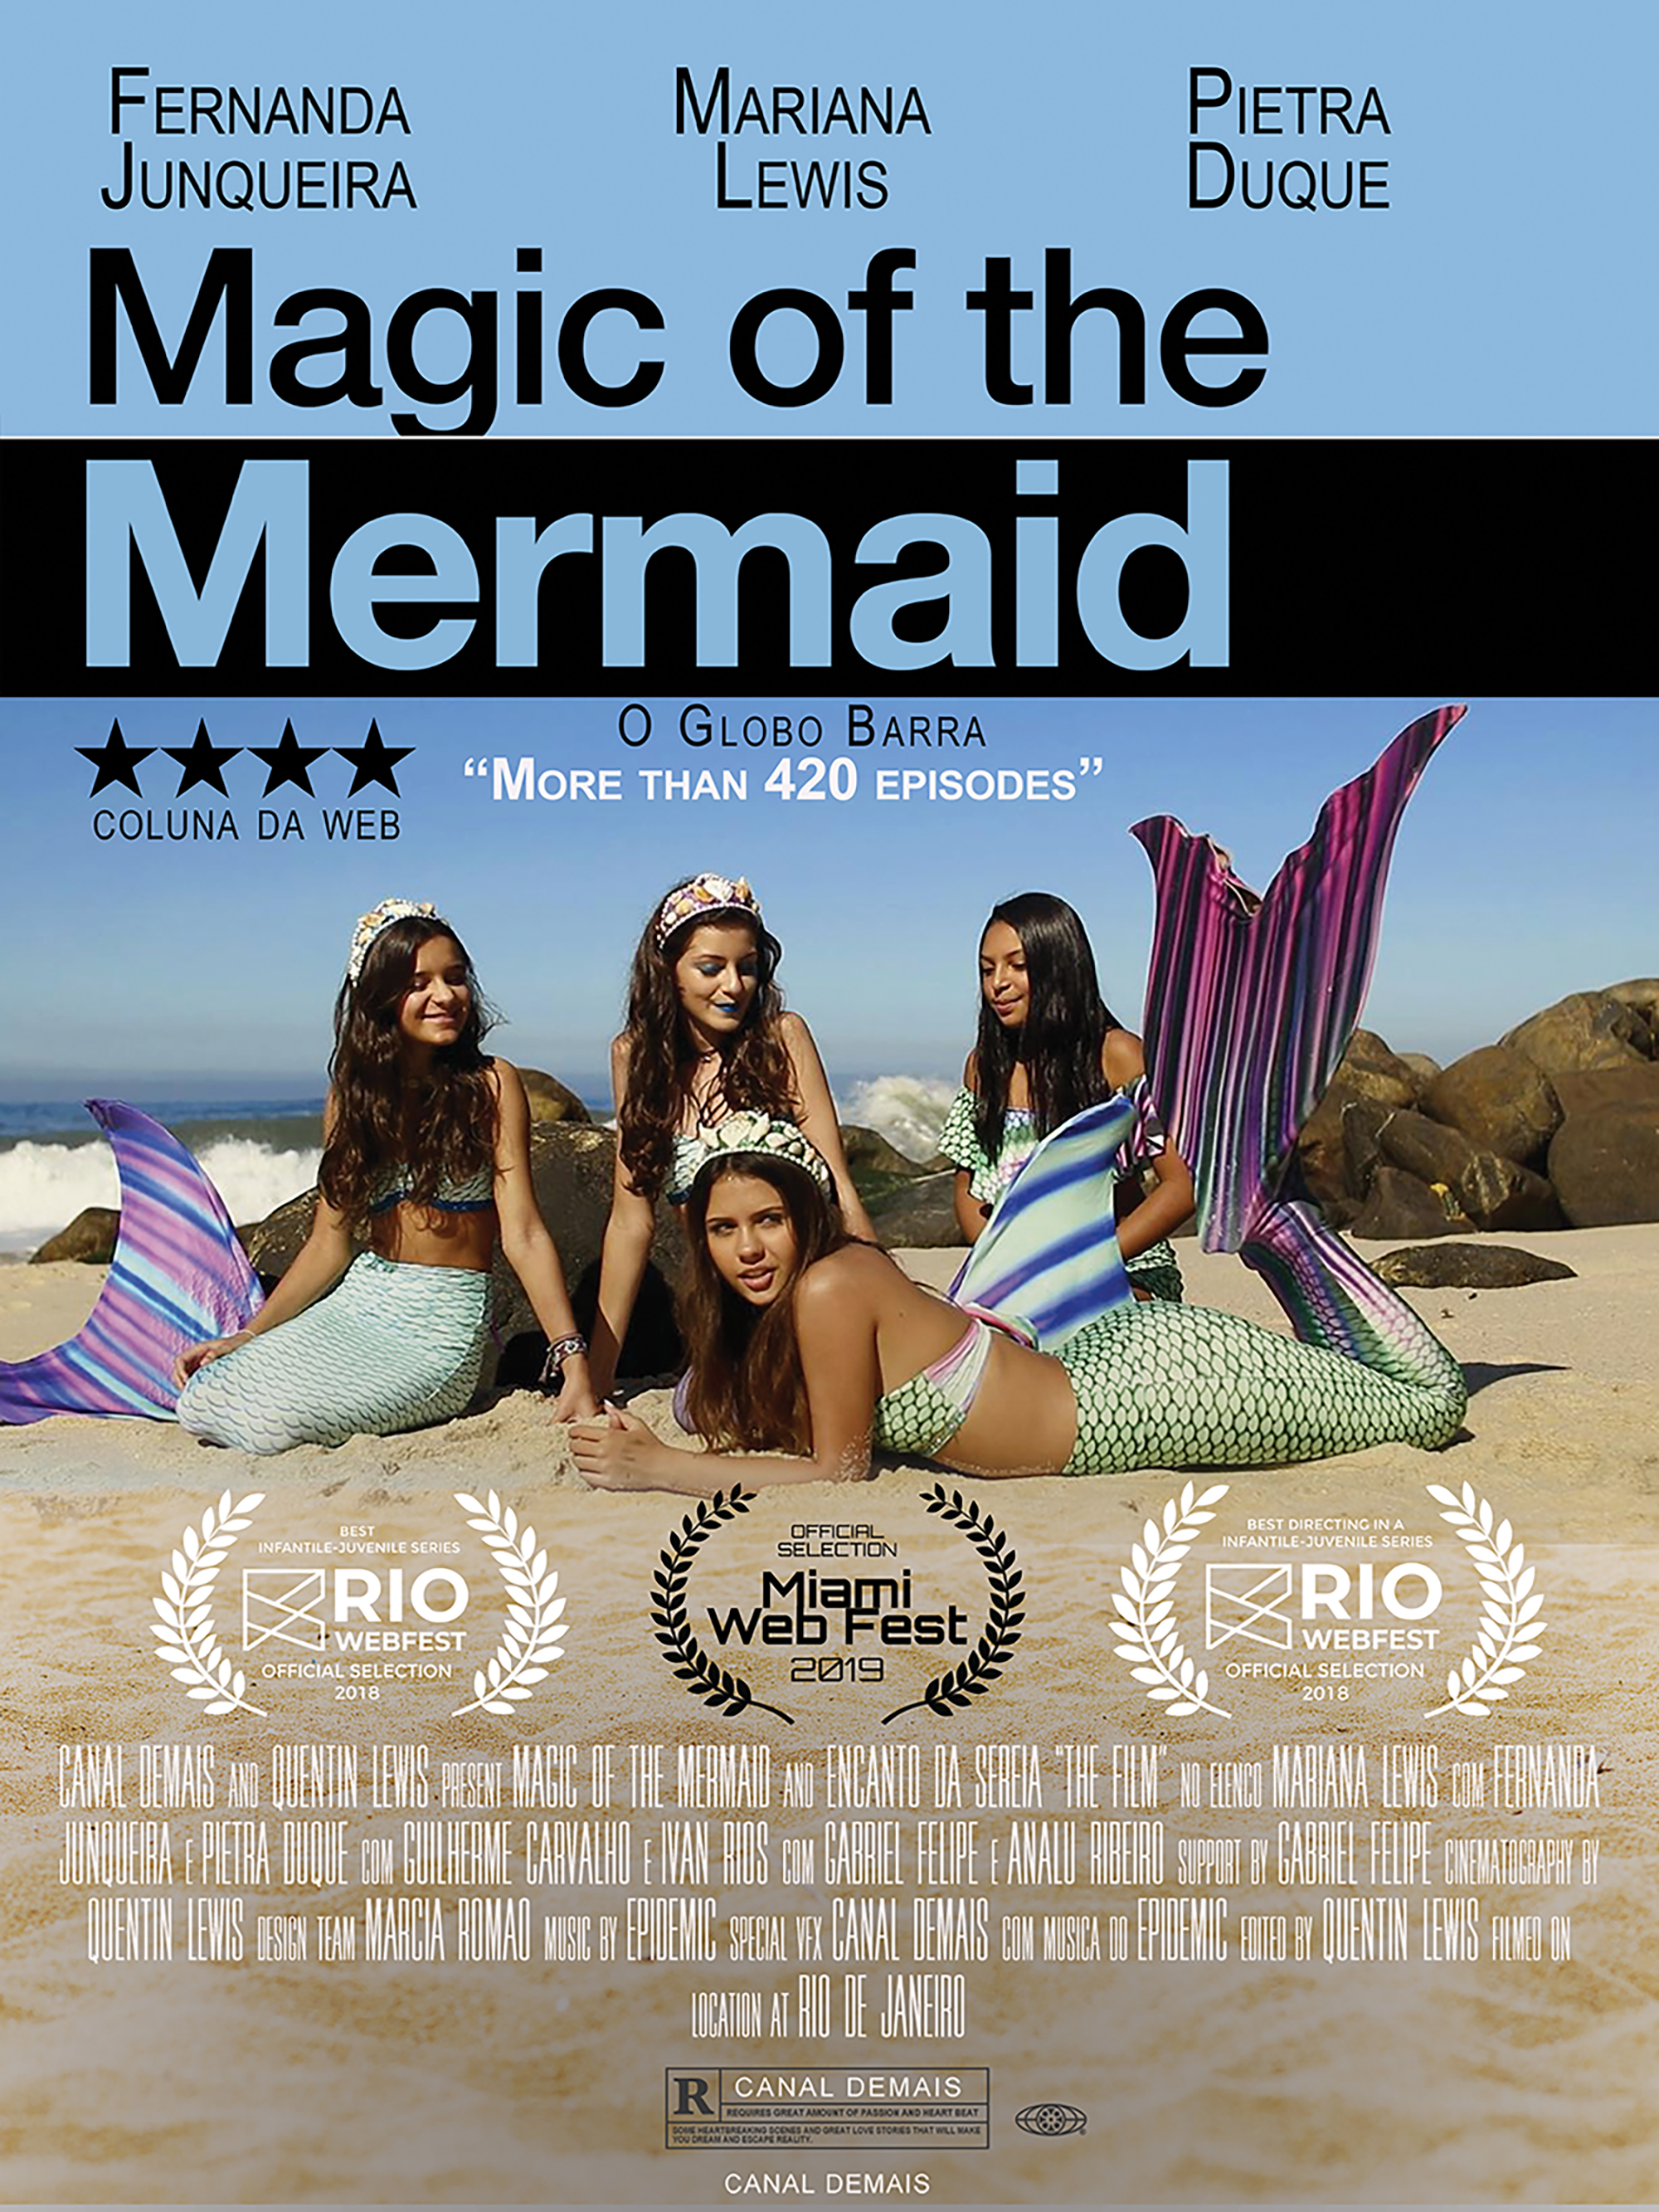 Magic of the Mermaid 300DPI Poster.jpg